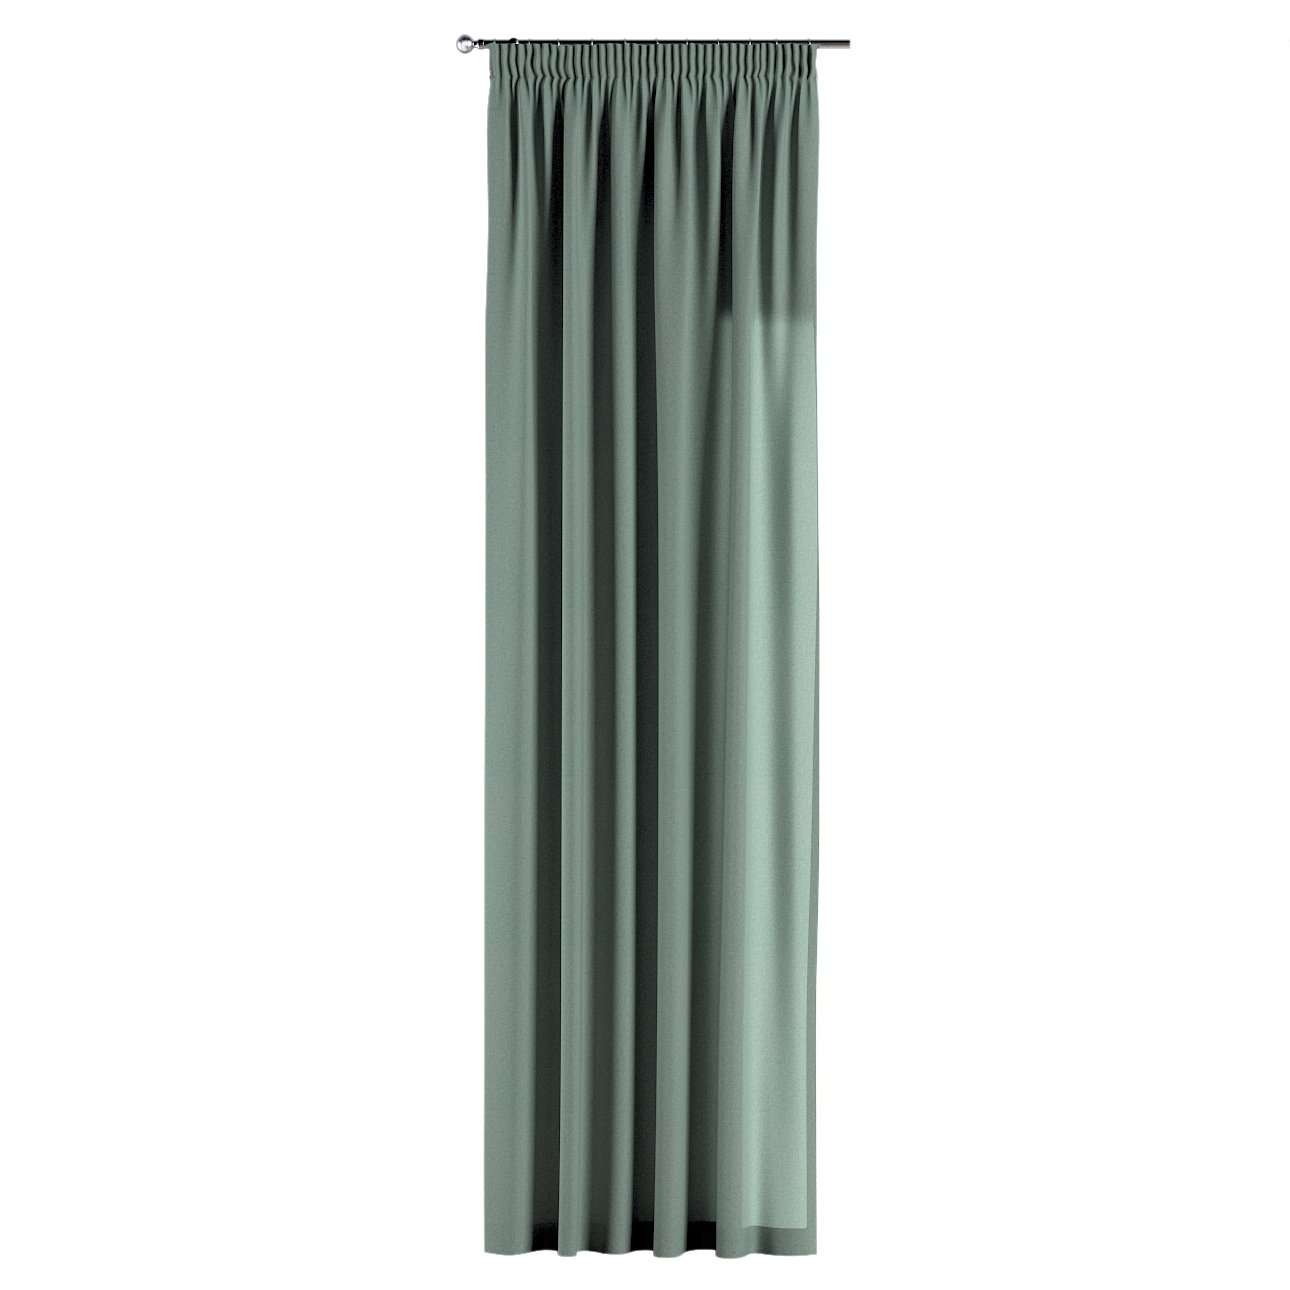 Pencil pleat curtain in collection Edinburgh, fabric: 142-31